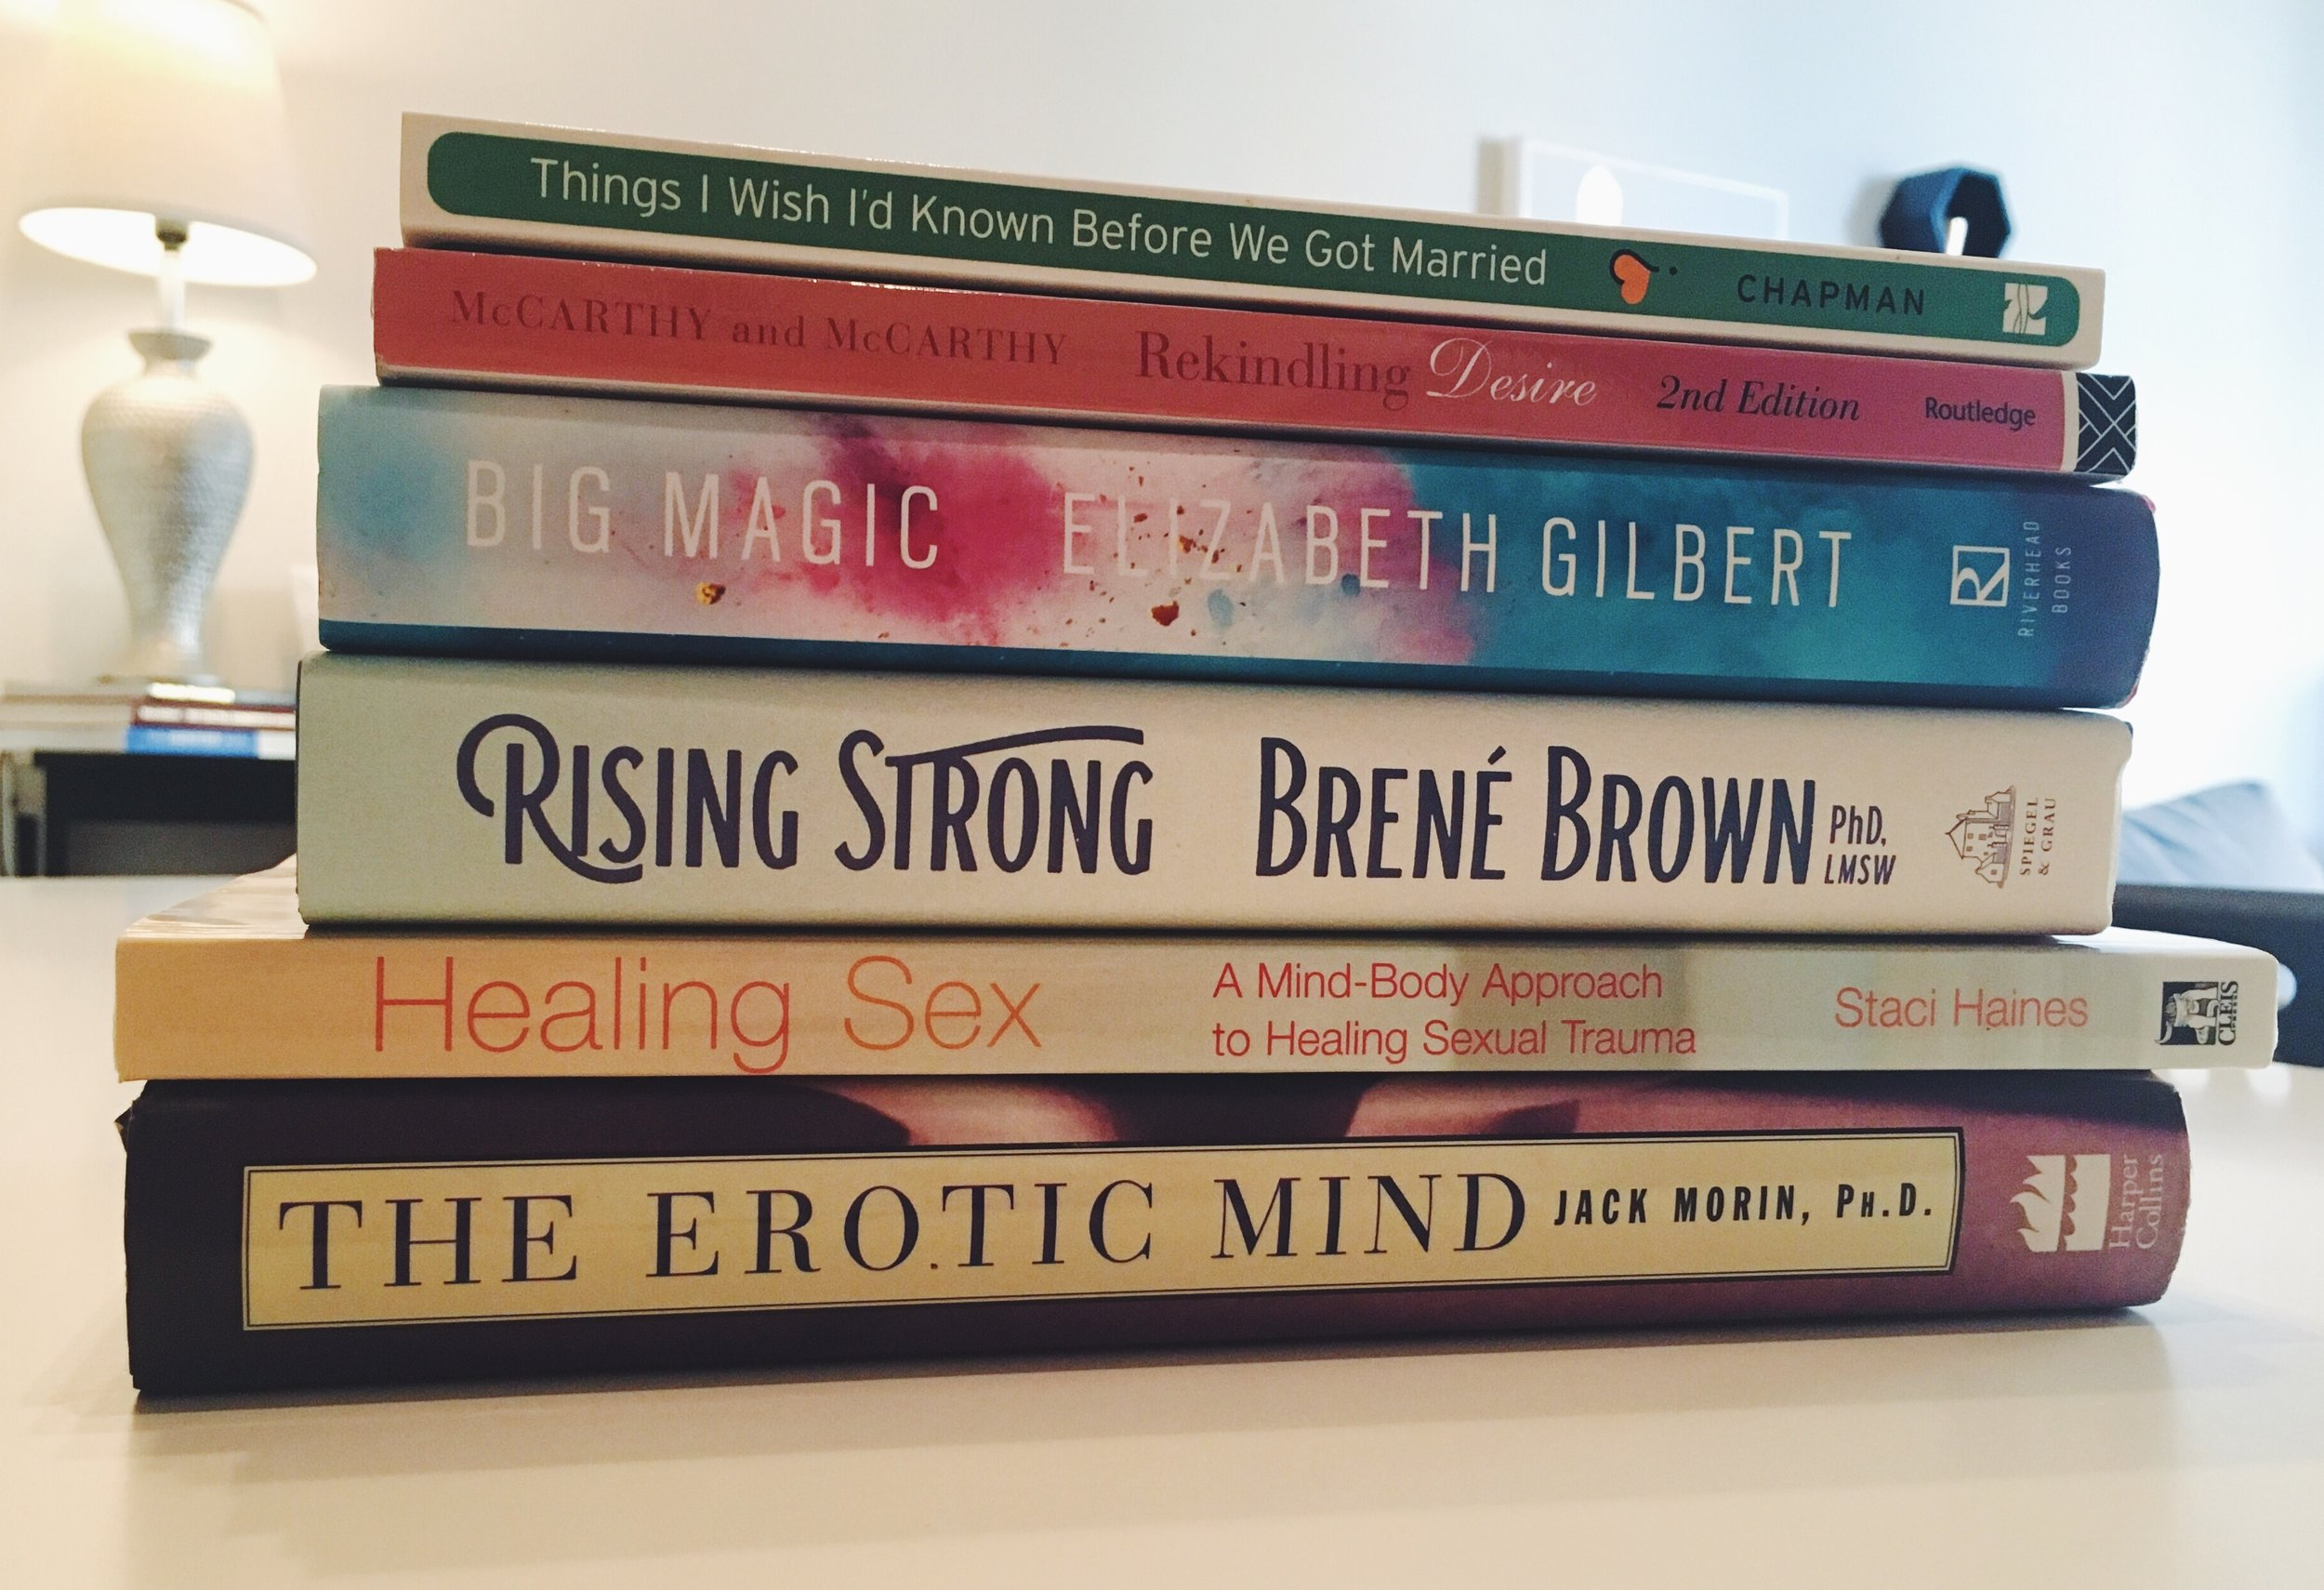 Erotic Mind, Healing Sex, Rising Strong, Big Magic, Things I Wish I'd Known Before We Got Married, Rekindling Desire _ Andrea Battiola Couples and Sex Therapy